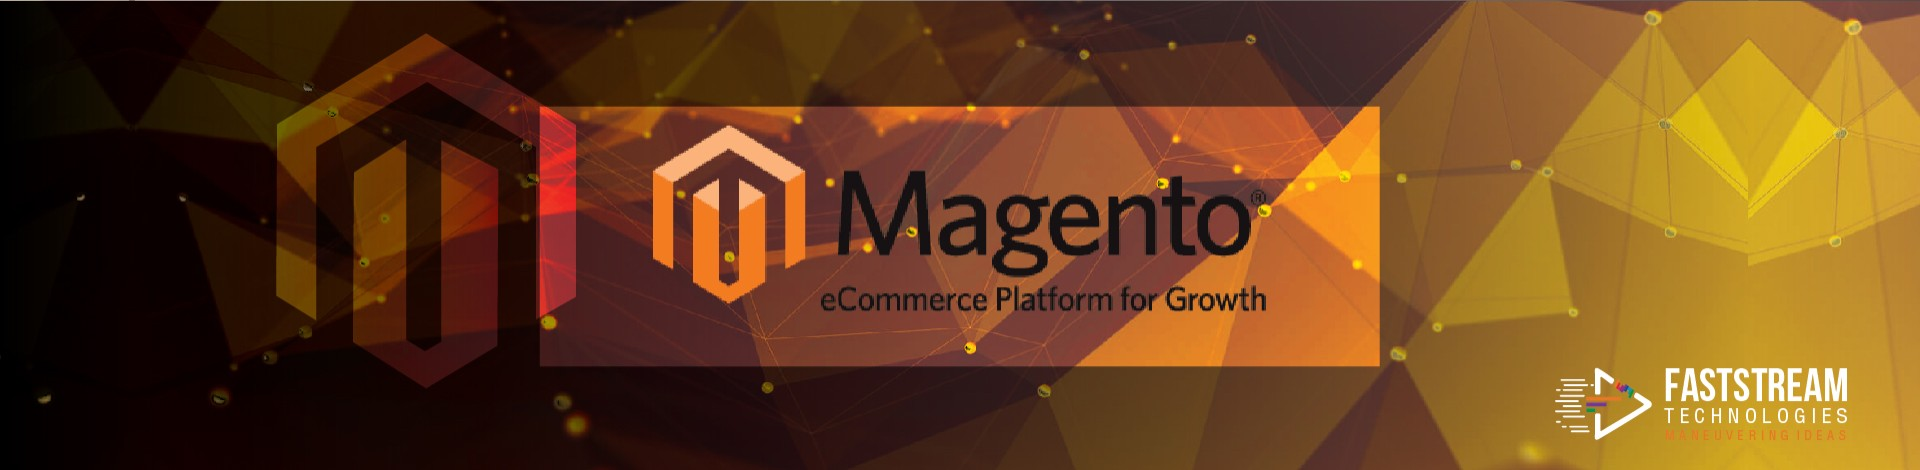 why choose magento for ecommerce